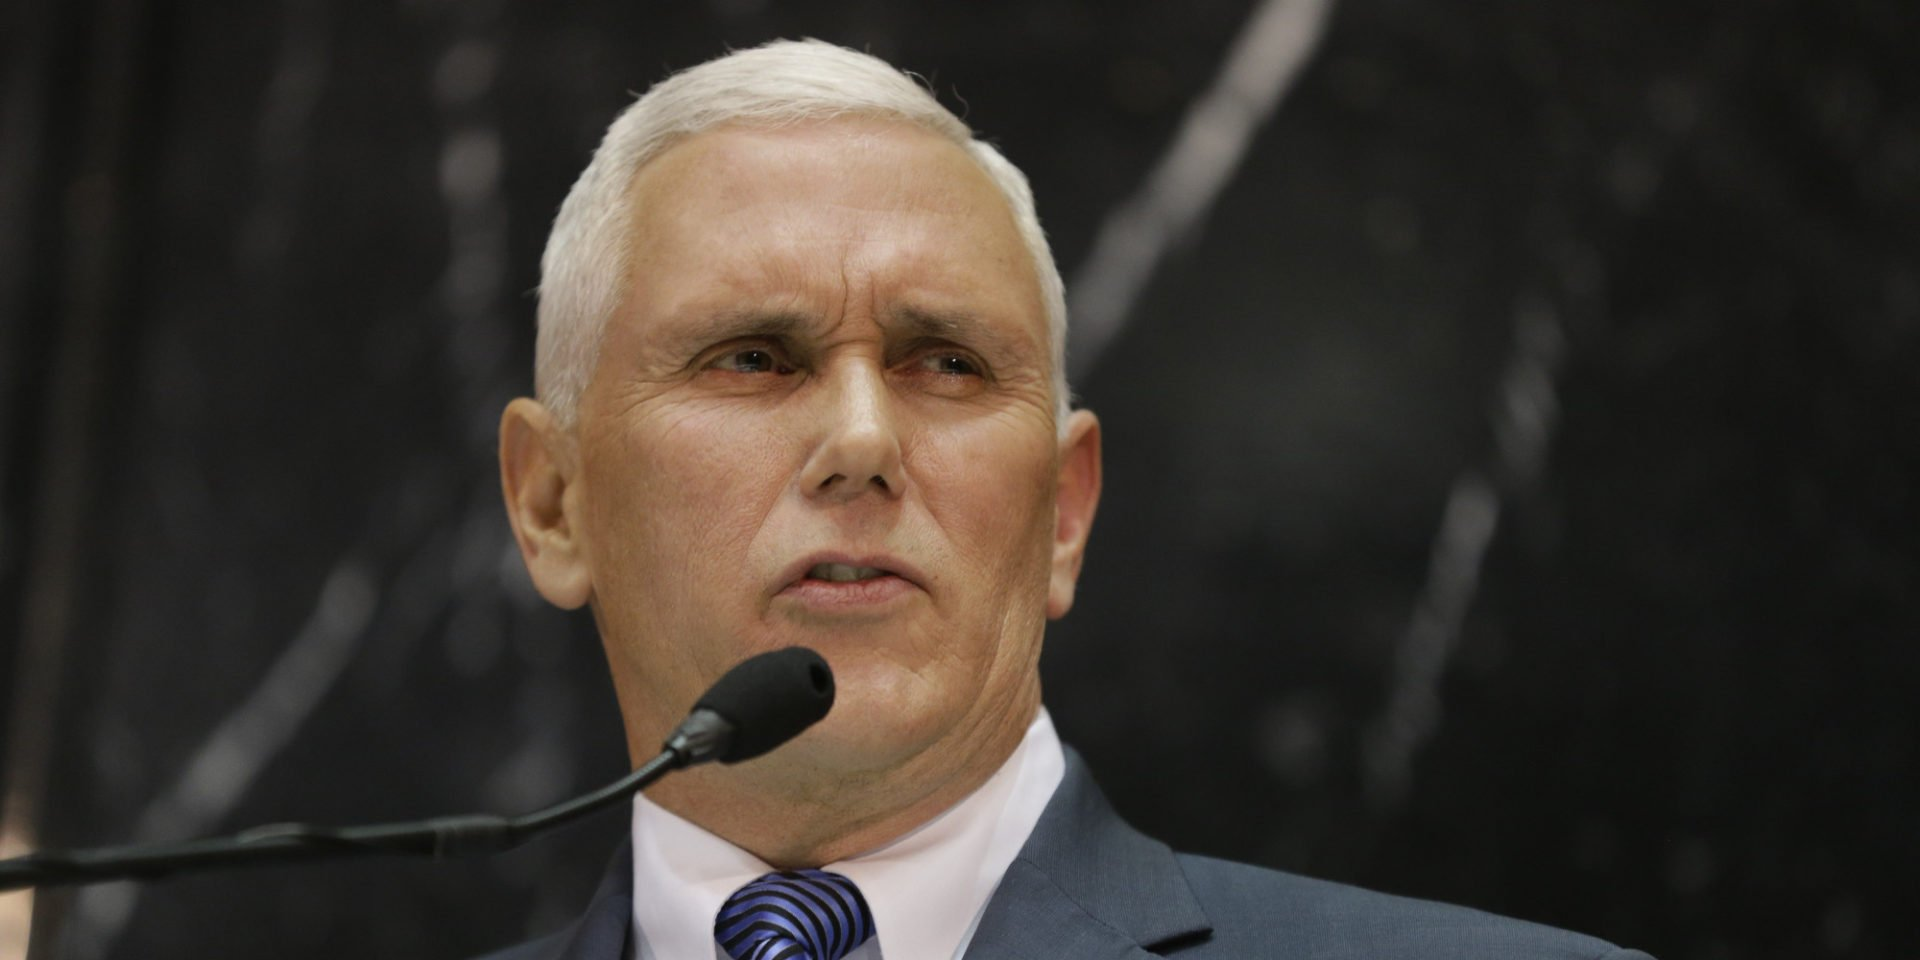 Mike Pence Convinces USAID To Provide $100 Million To Help Christians and Yazidis in Iraq – True Pundit